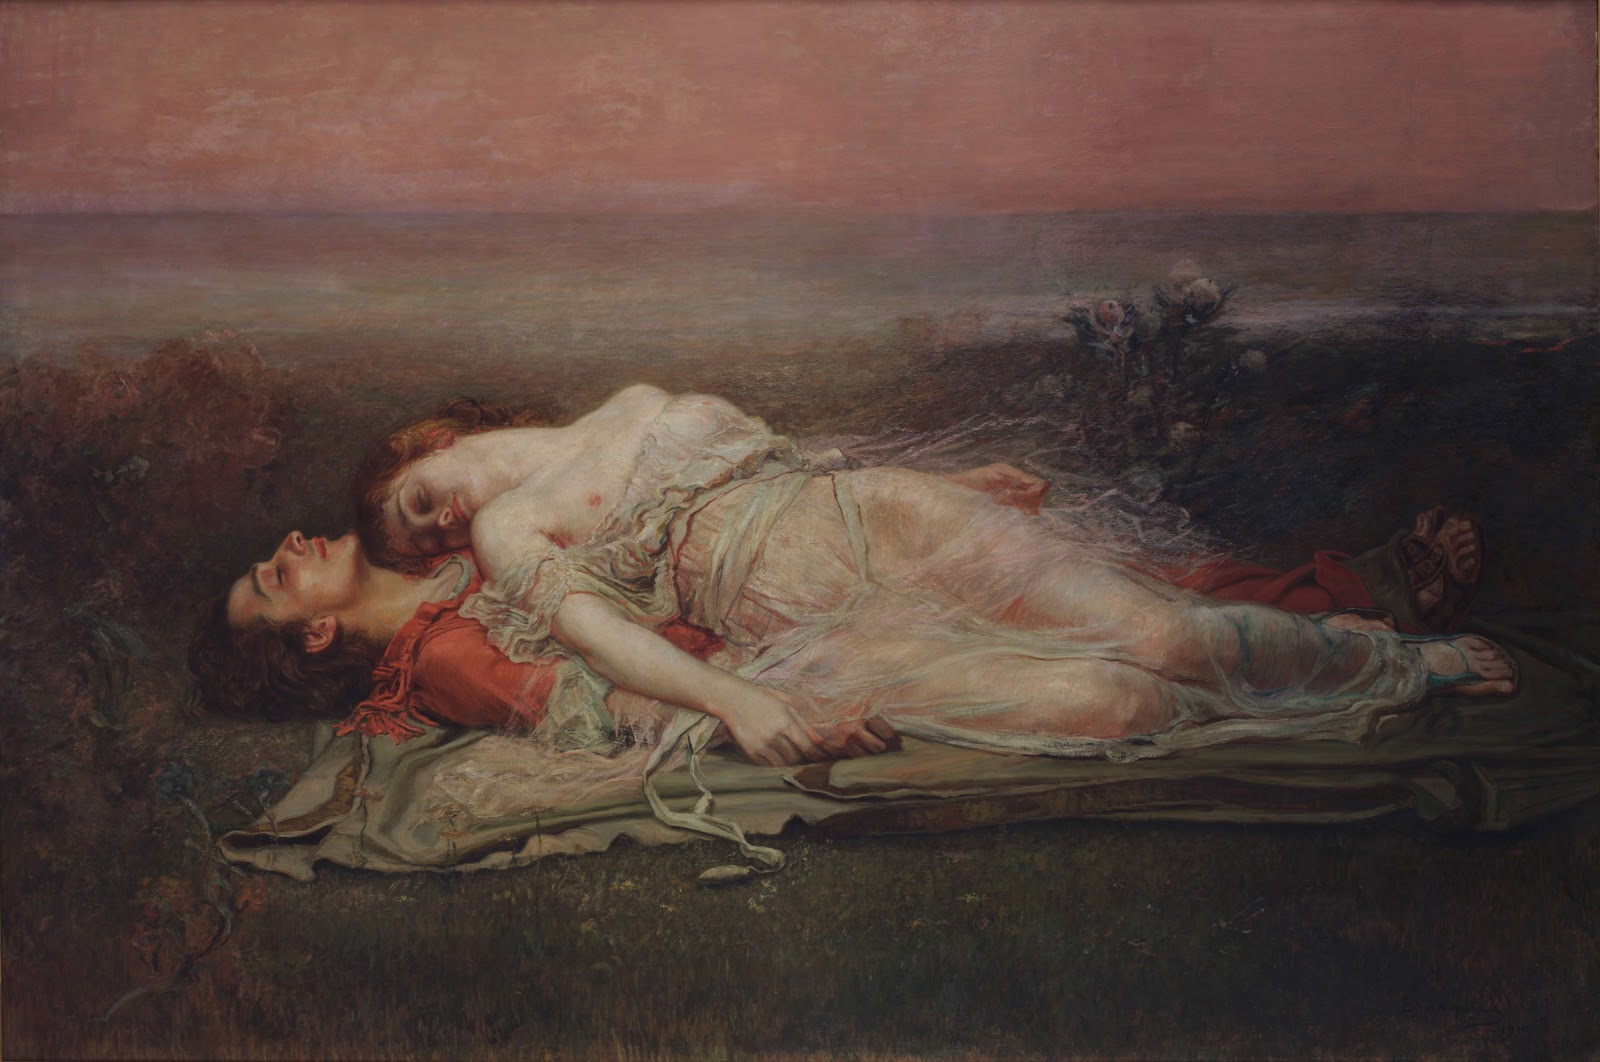 the theme of lovesick in gottfrieds tristan Download and read honor love and isolde in gottfrieds tristan studies on themes and motifs in literature vol 61 honor love and isolde in gottfrieds tristan studies.